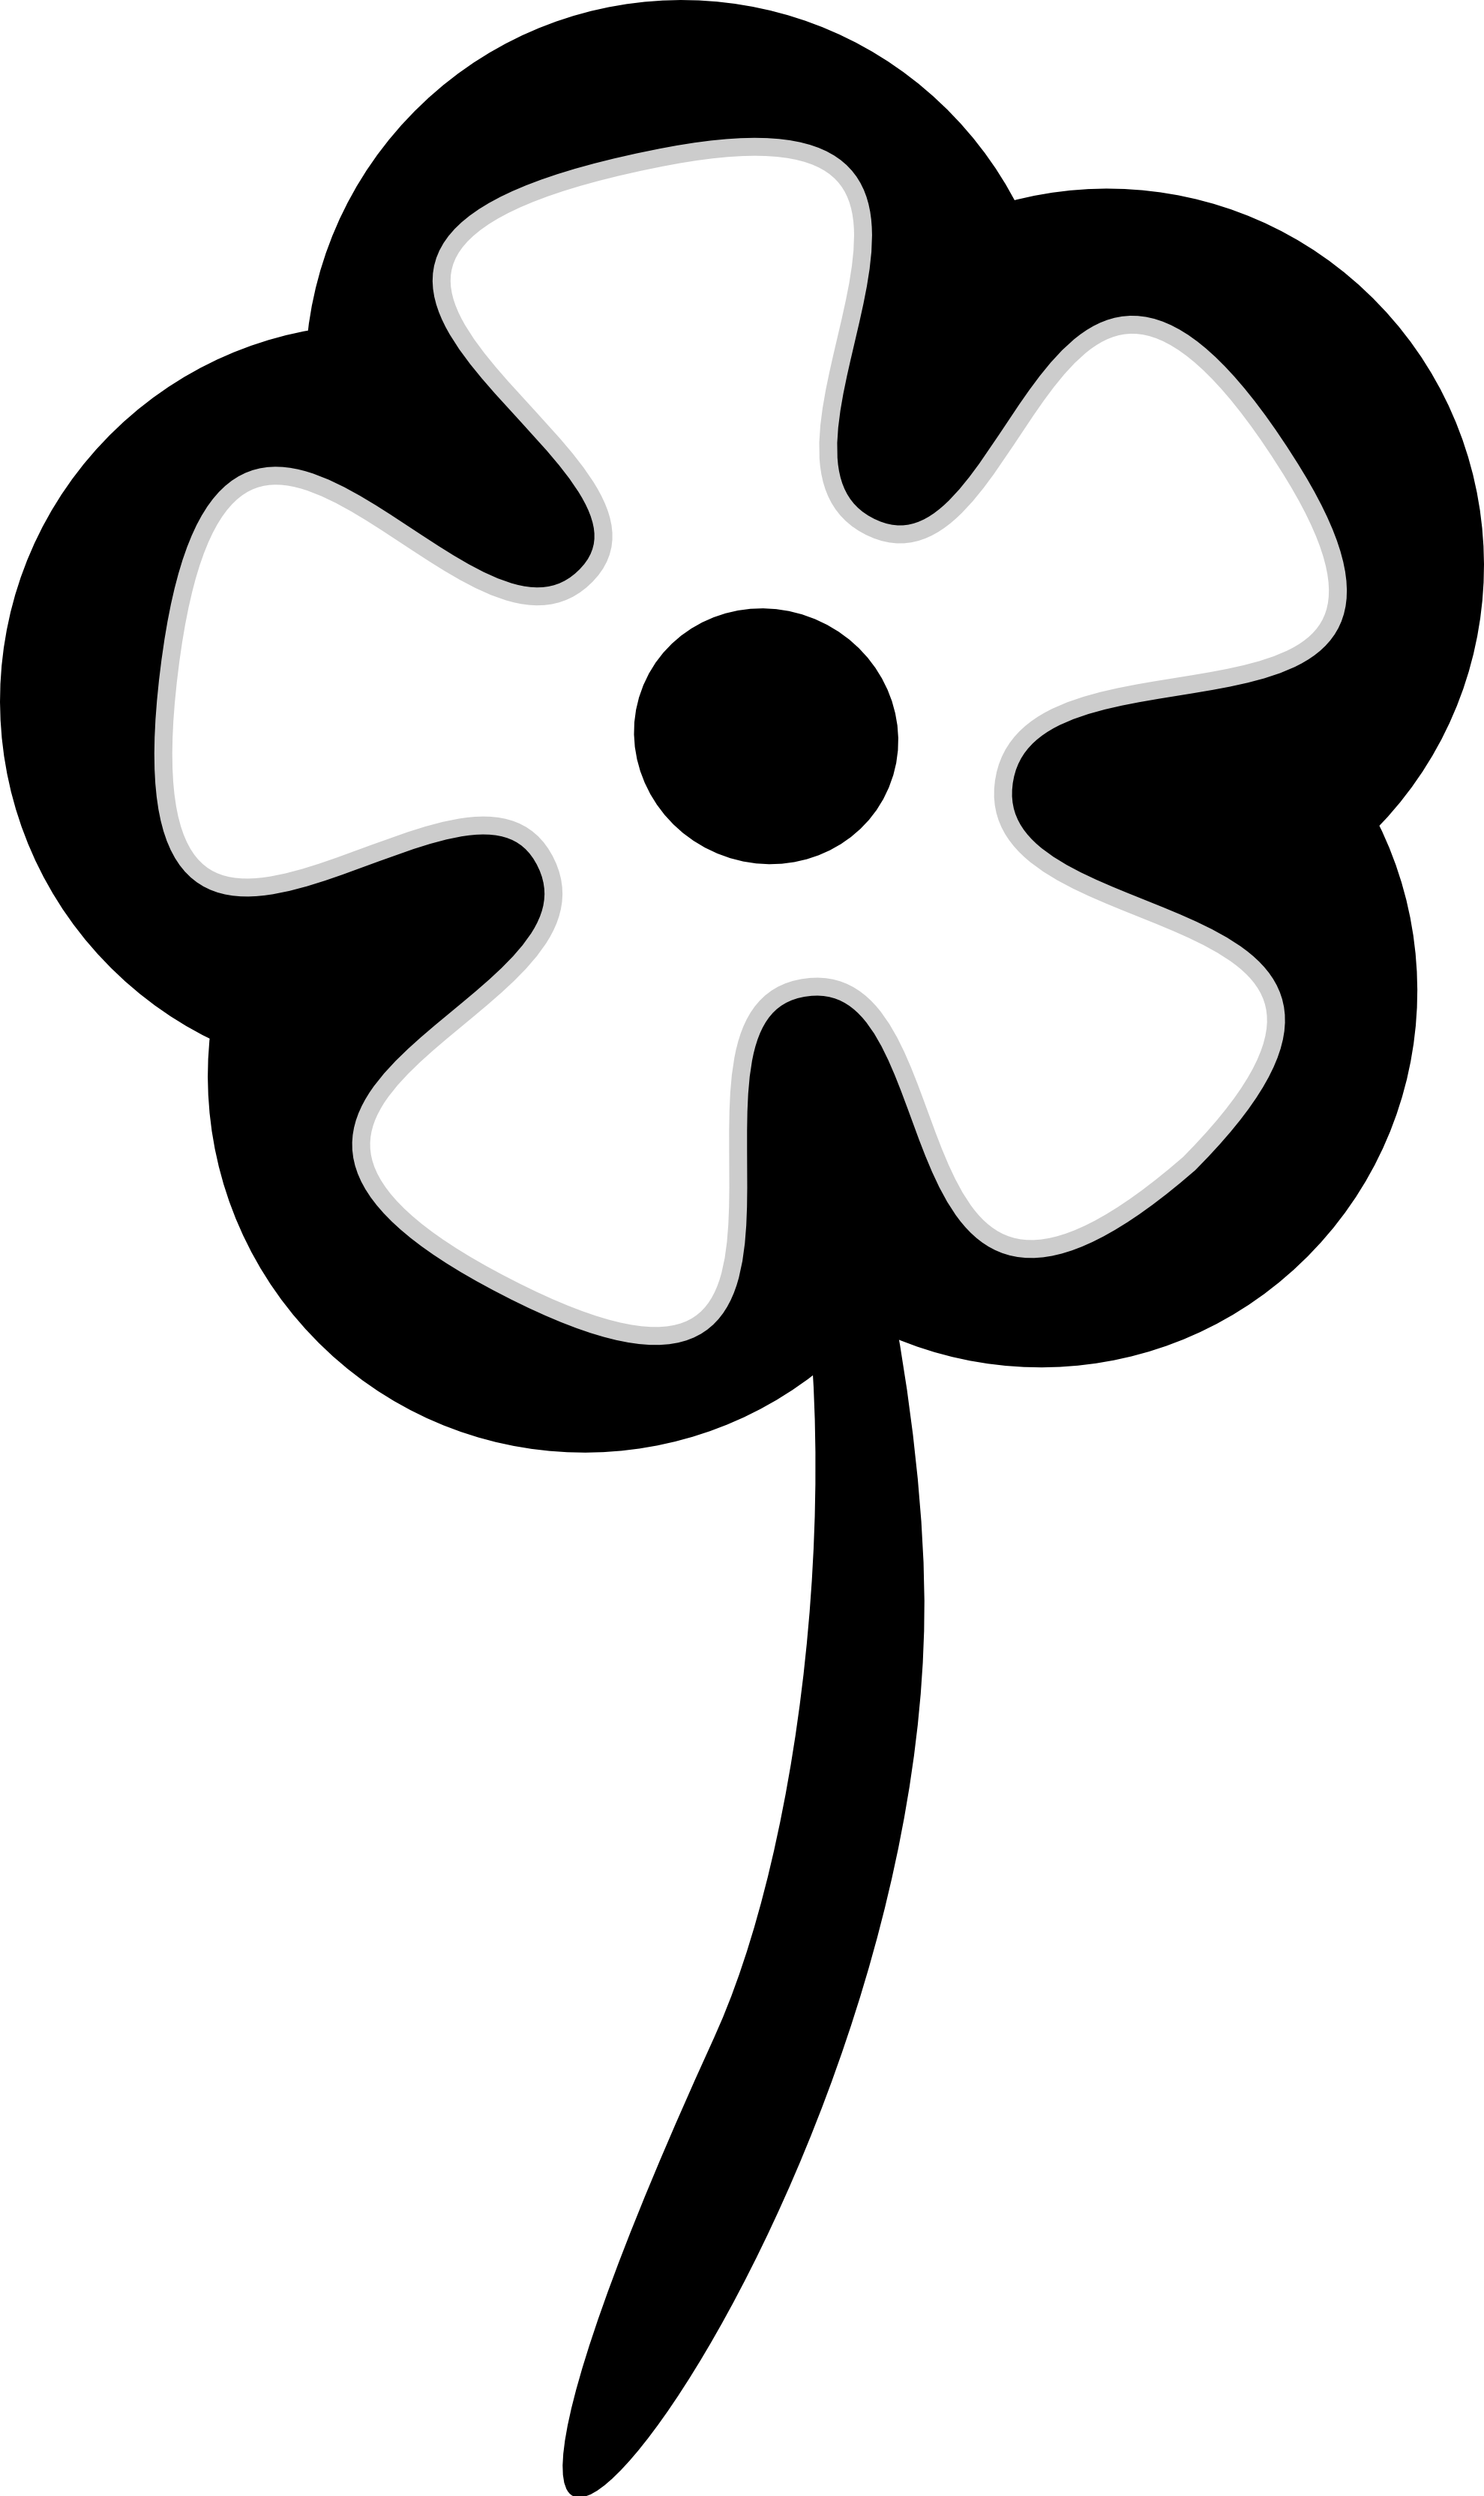 Black and white flower images clipart free download best black and 1979x3328 flower black and white flowers black and white clip art image mightylinksfo